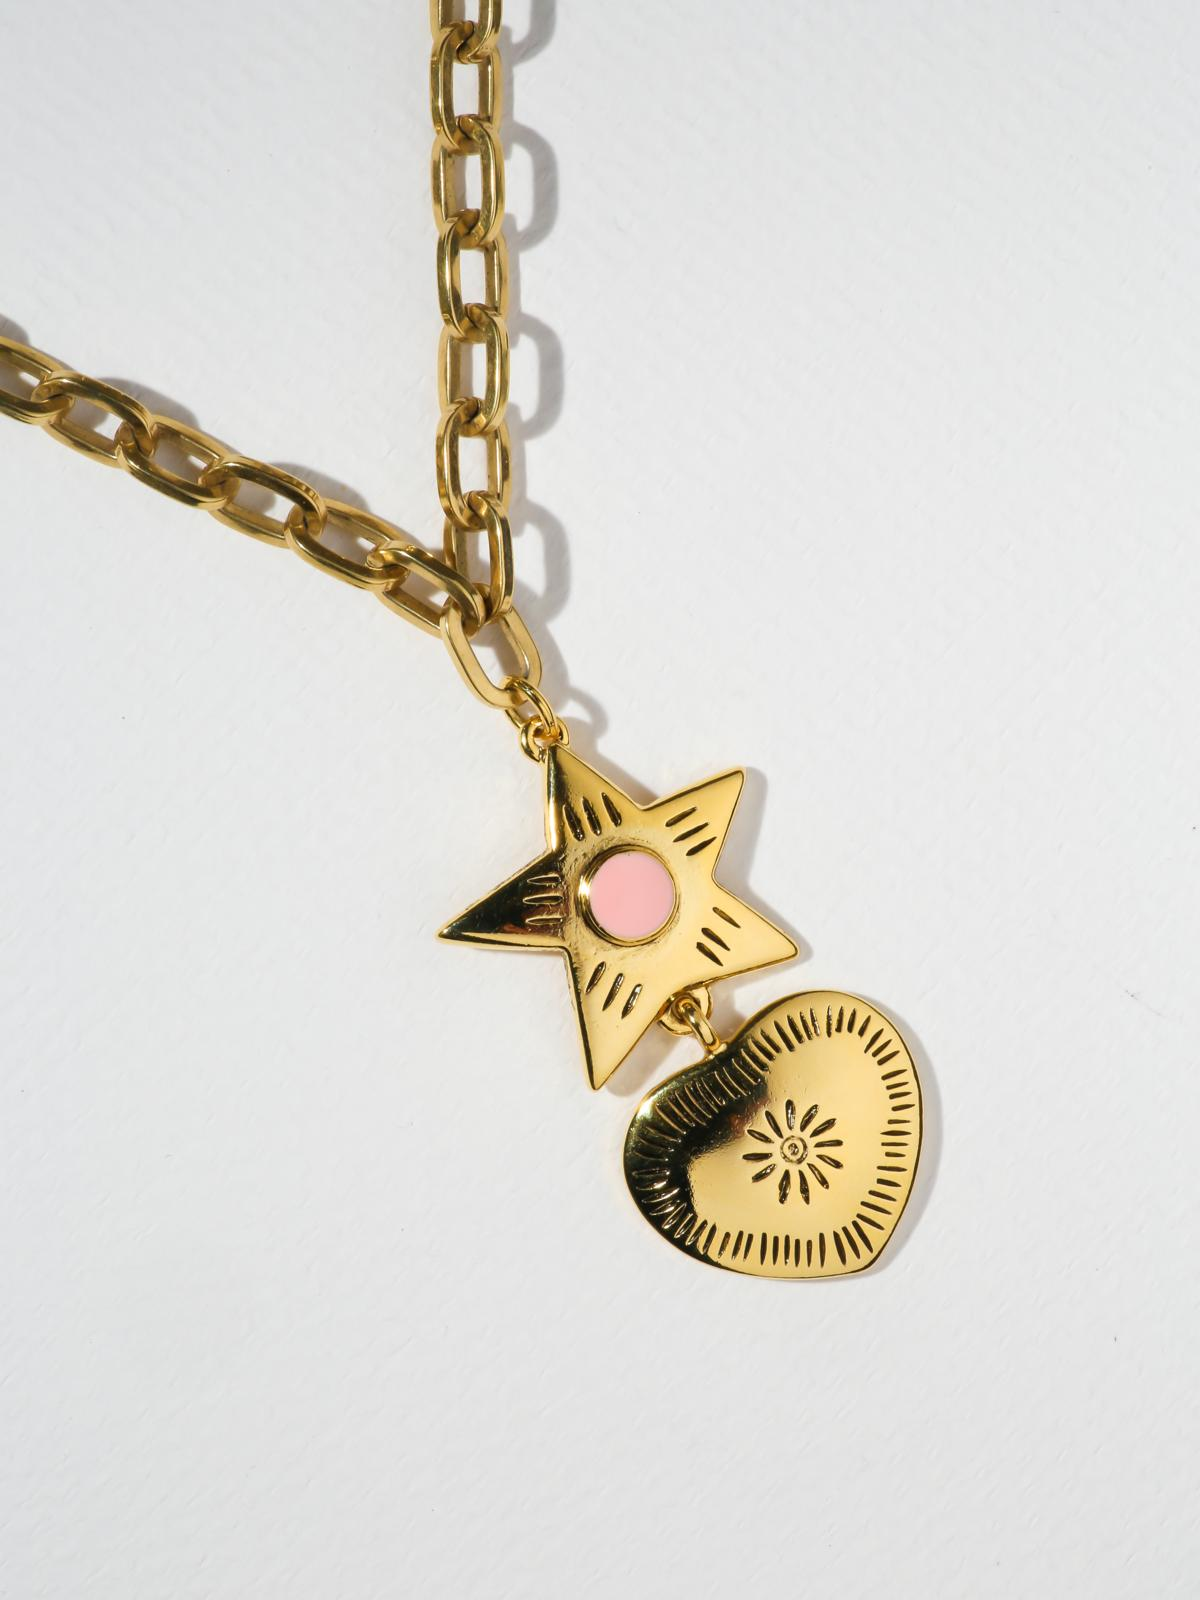 The Lonestar Necklace